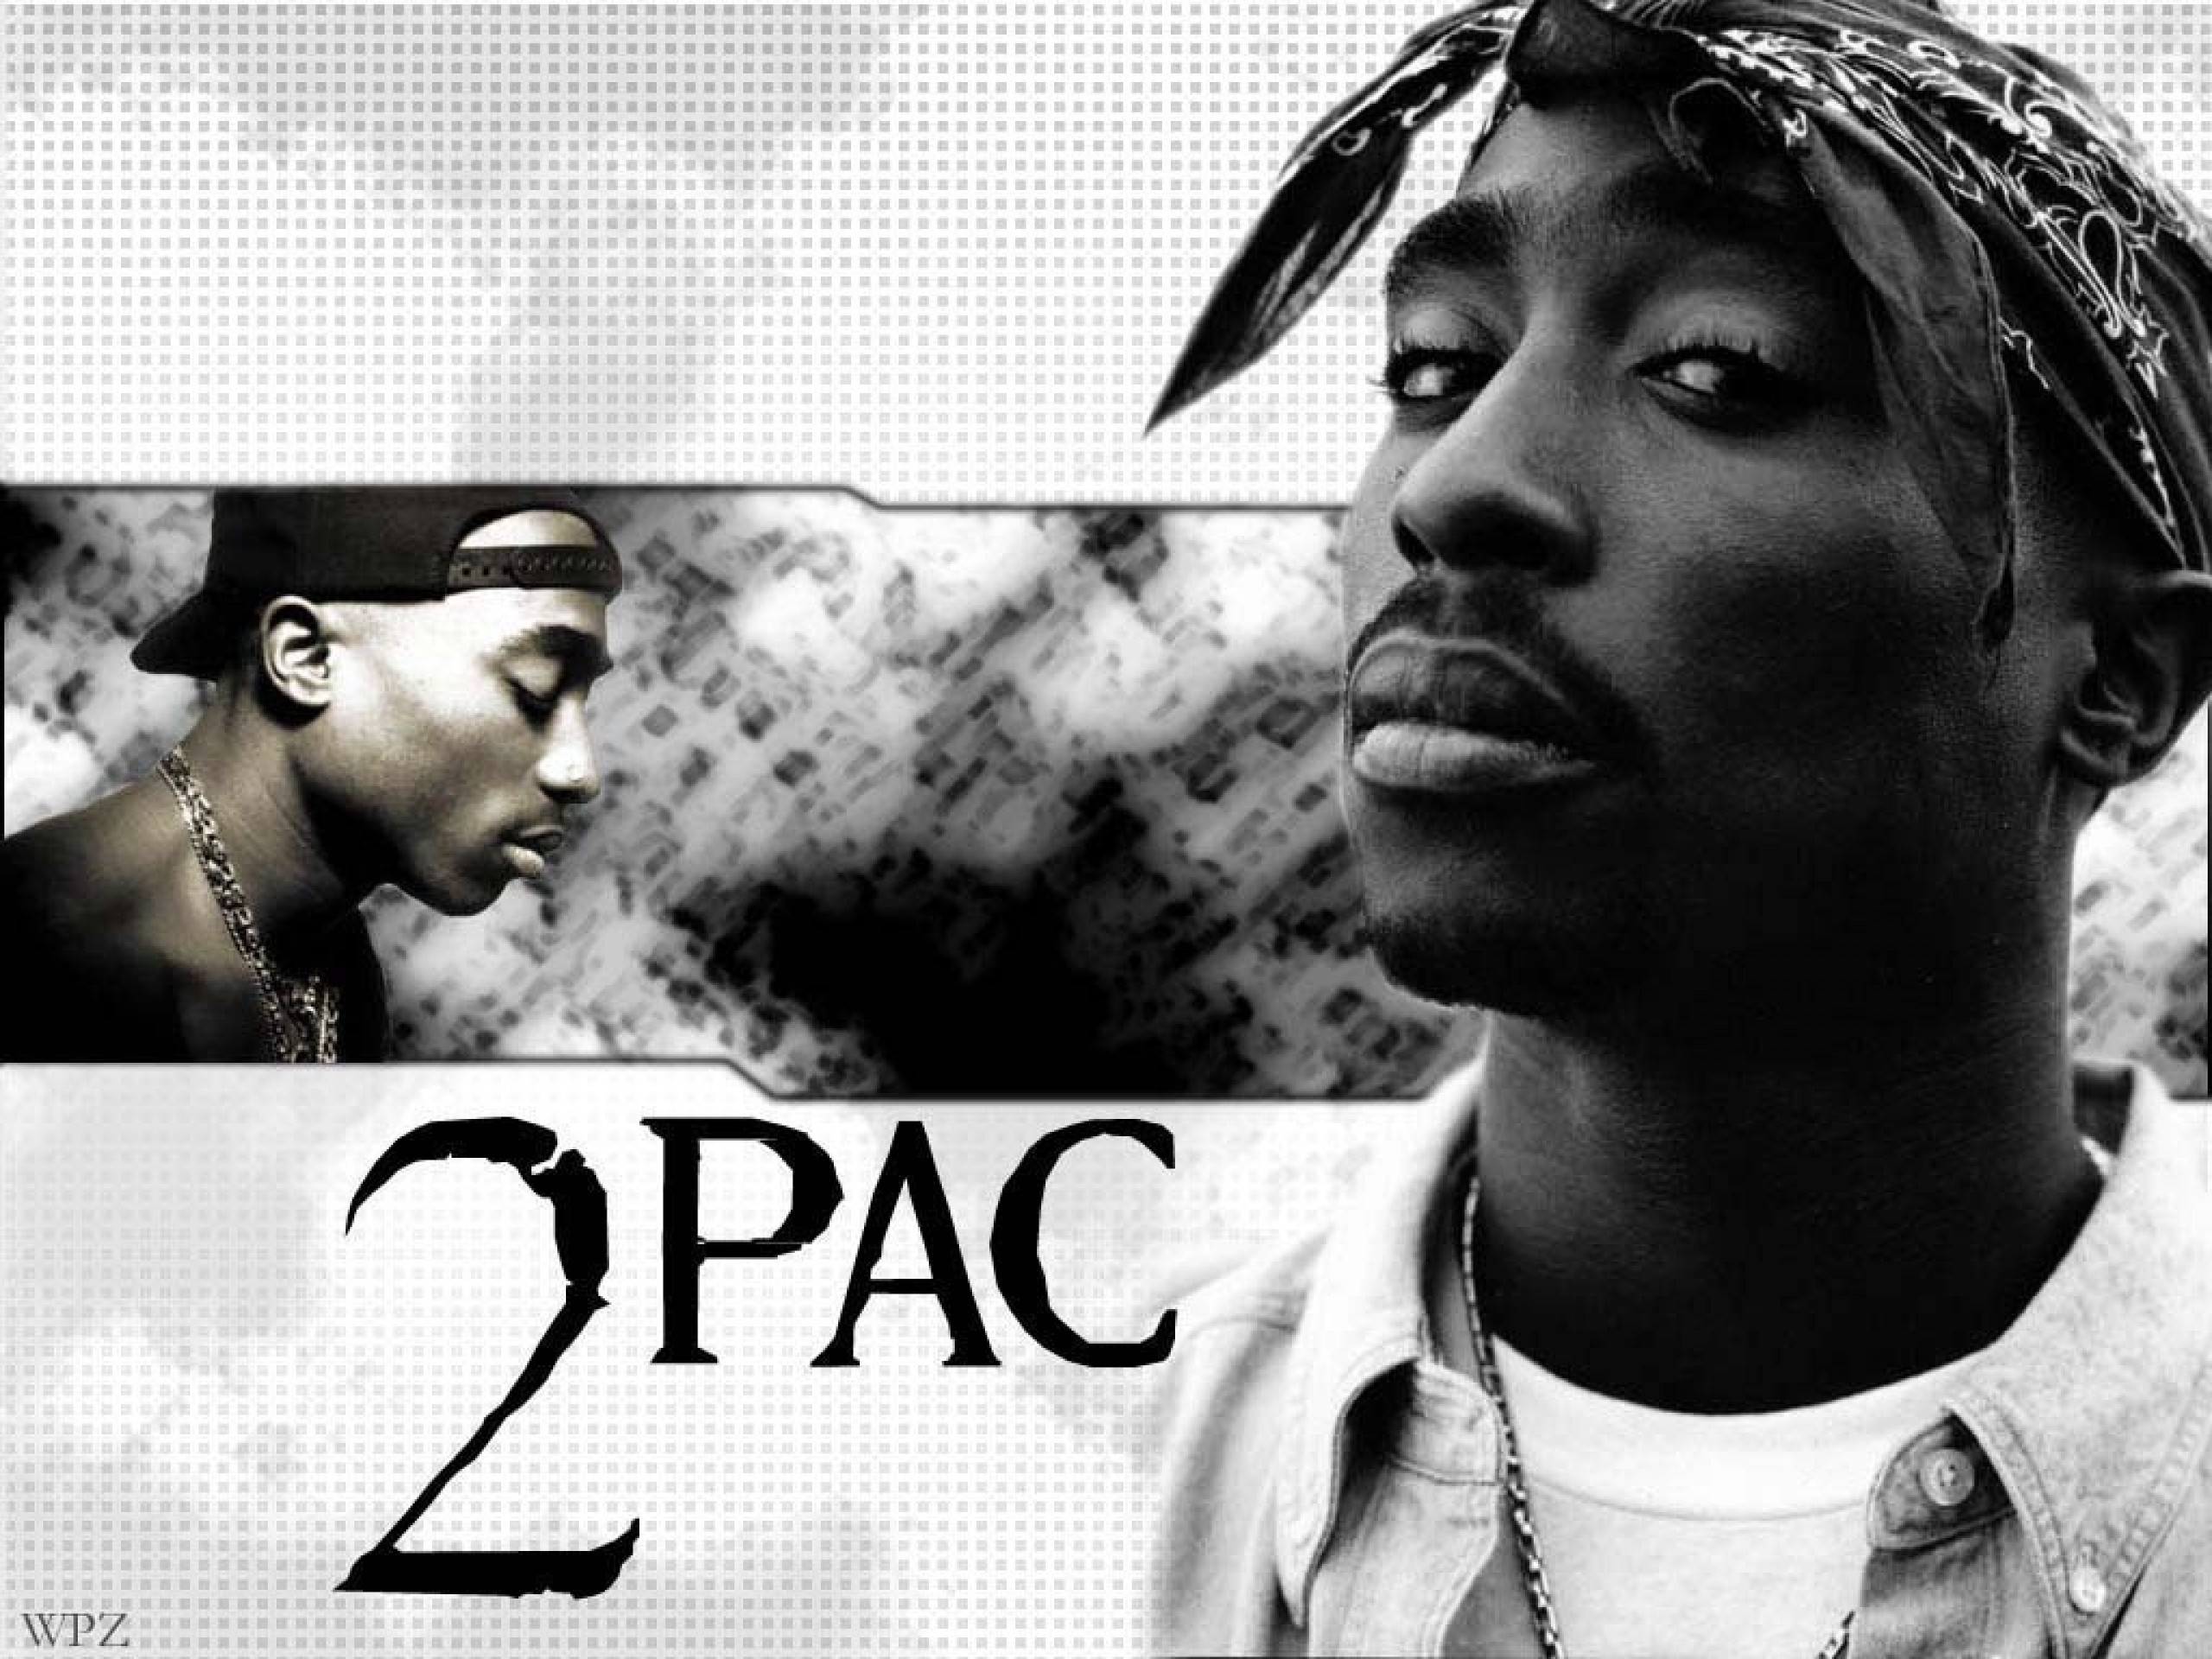 2pac HD wallpapers #2